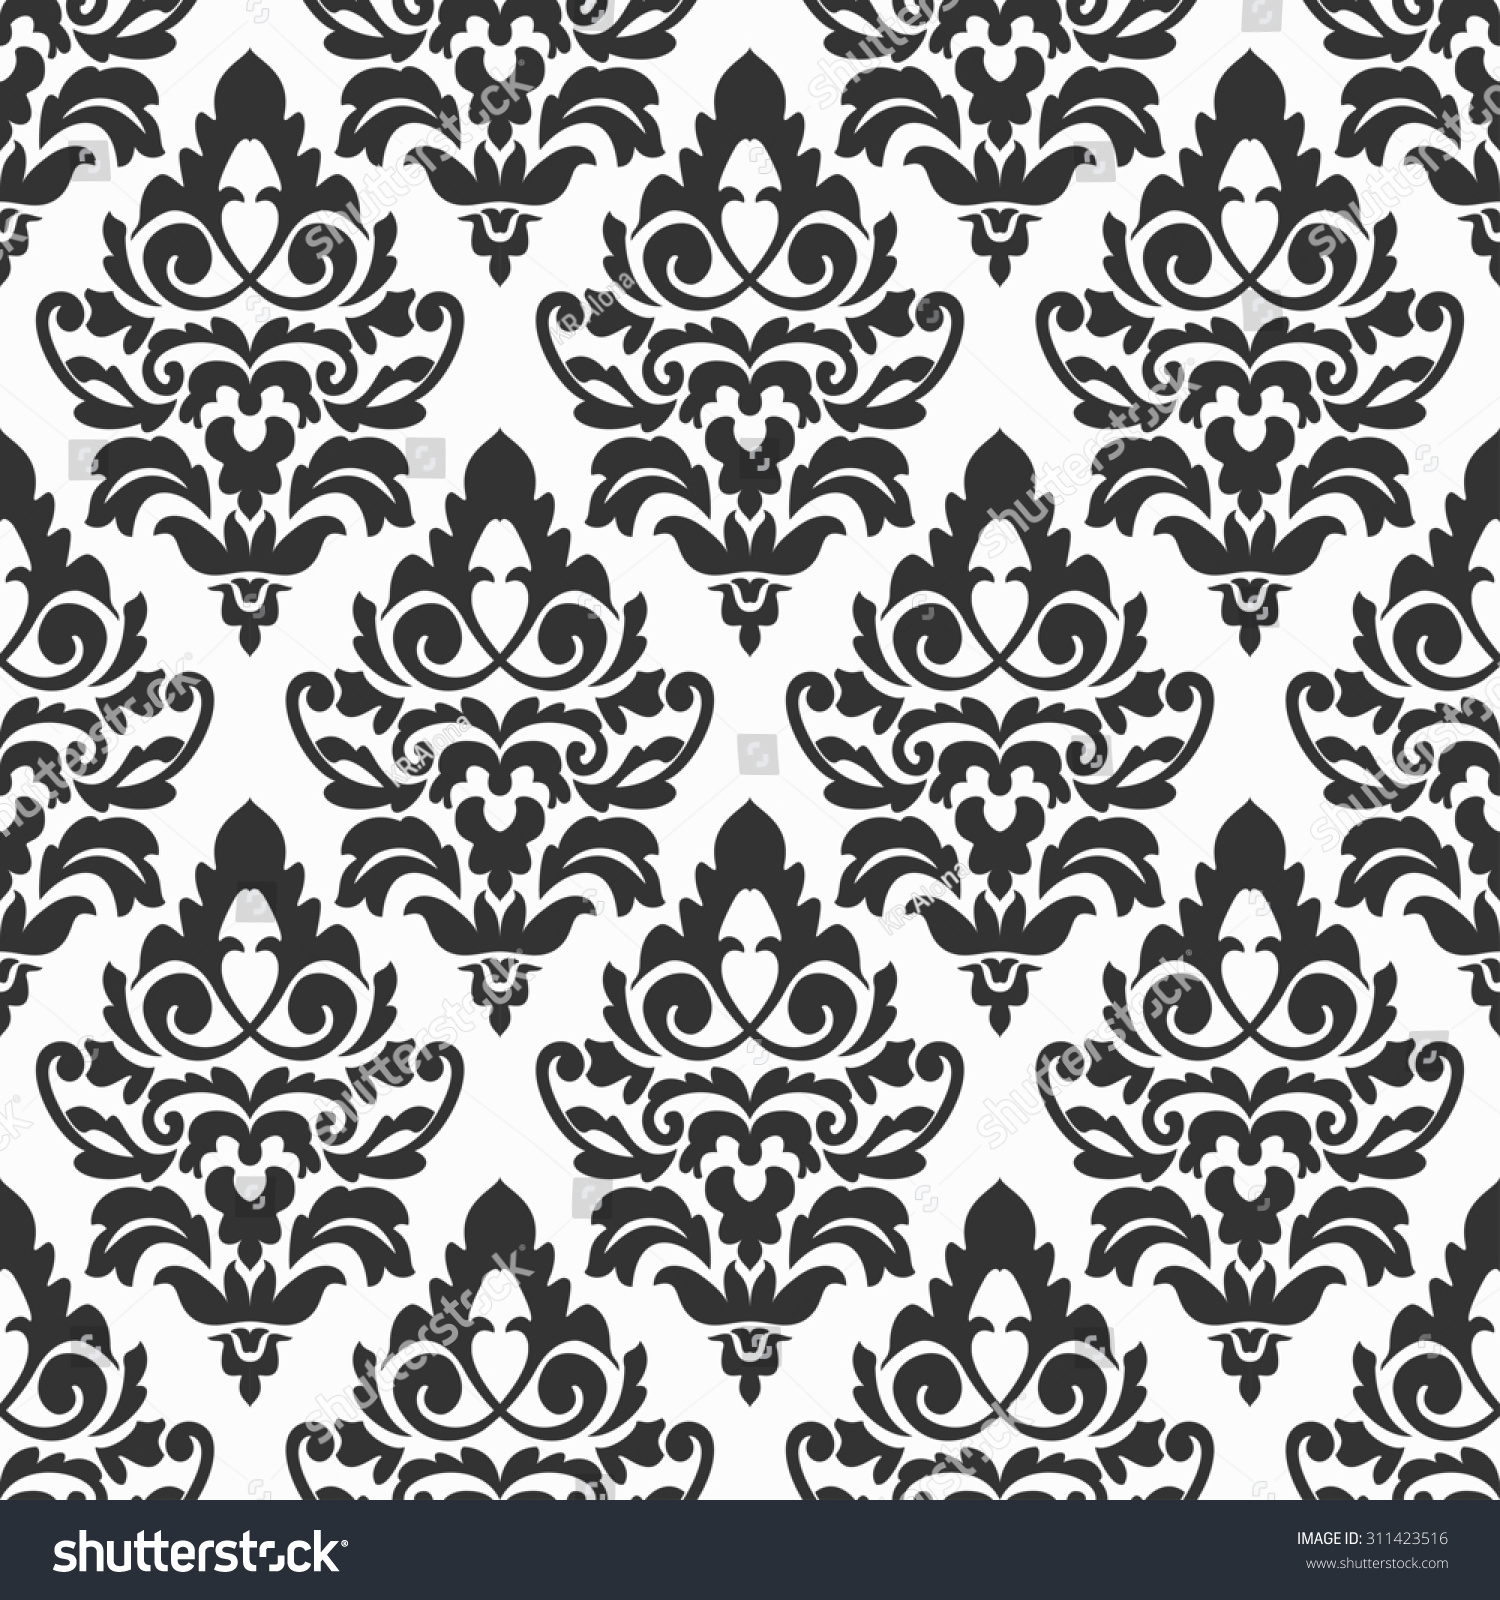 Elegant Black White Damask Wallpaper Vintage Stockillustration